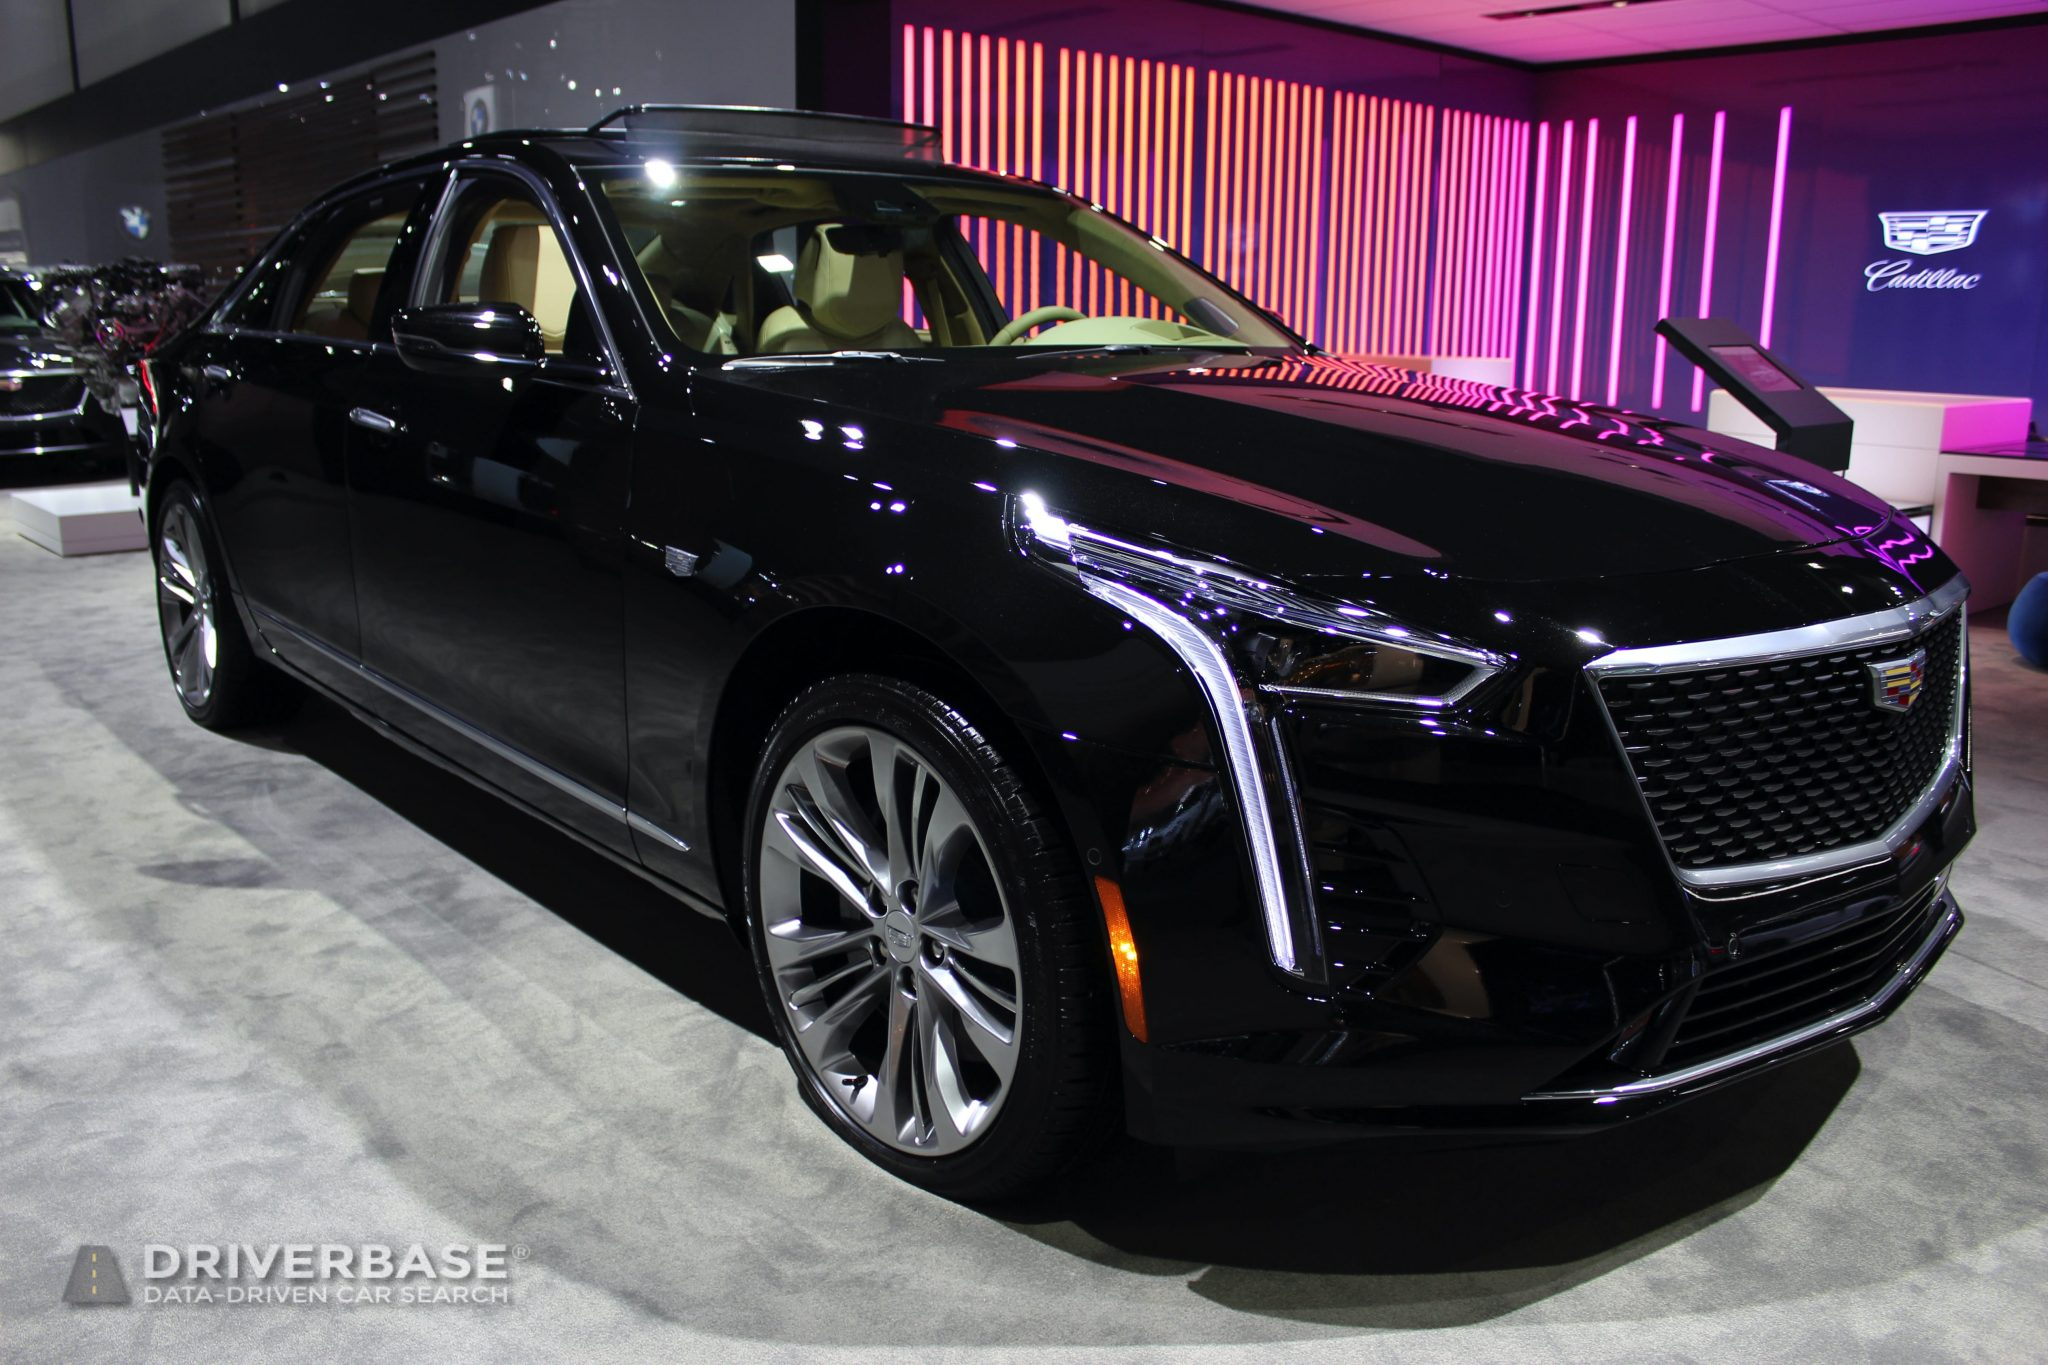 2020 Cadillac CT6 800T at the 2019 Los Angeles Auto Show